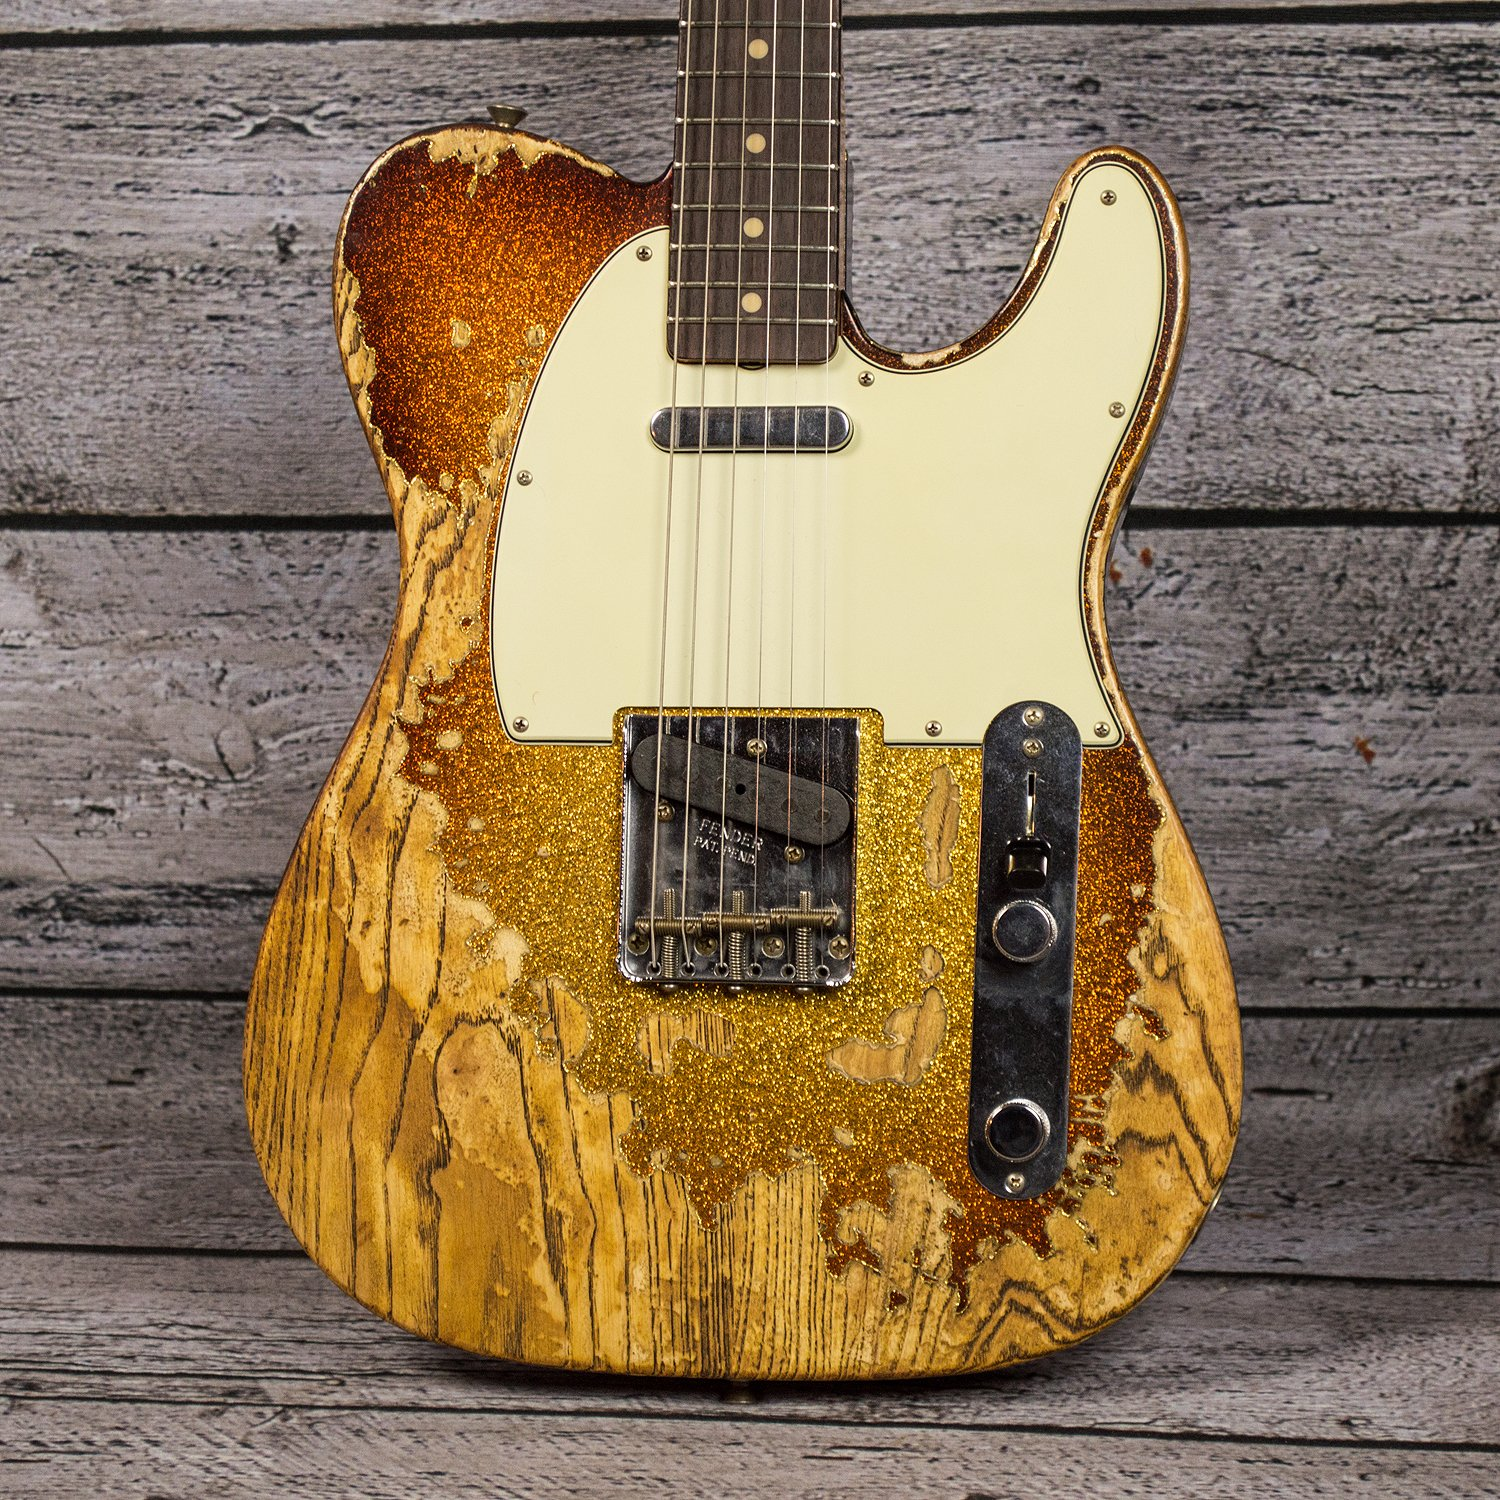 Fender Ltd Ed 1963 Telecaster Super Heavy Relic 3-Tone Sunburst Sparkle